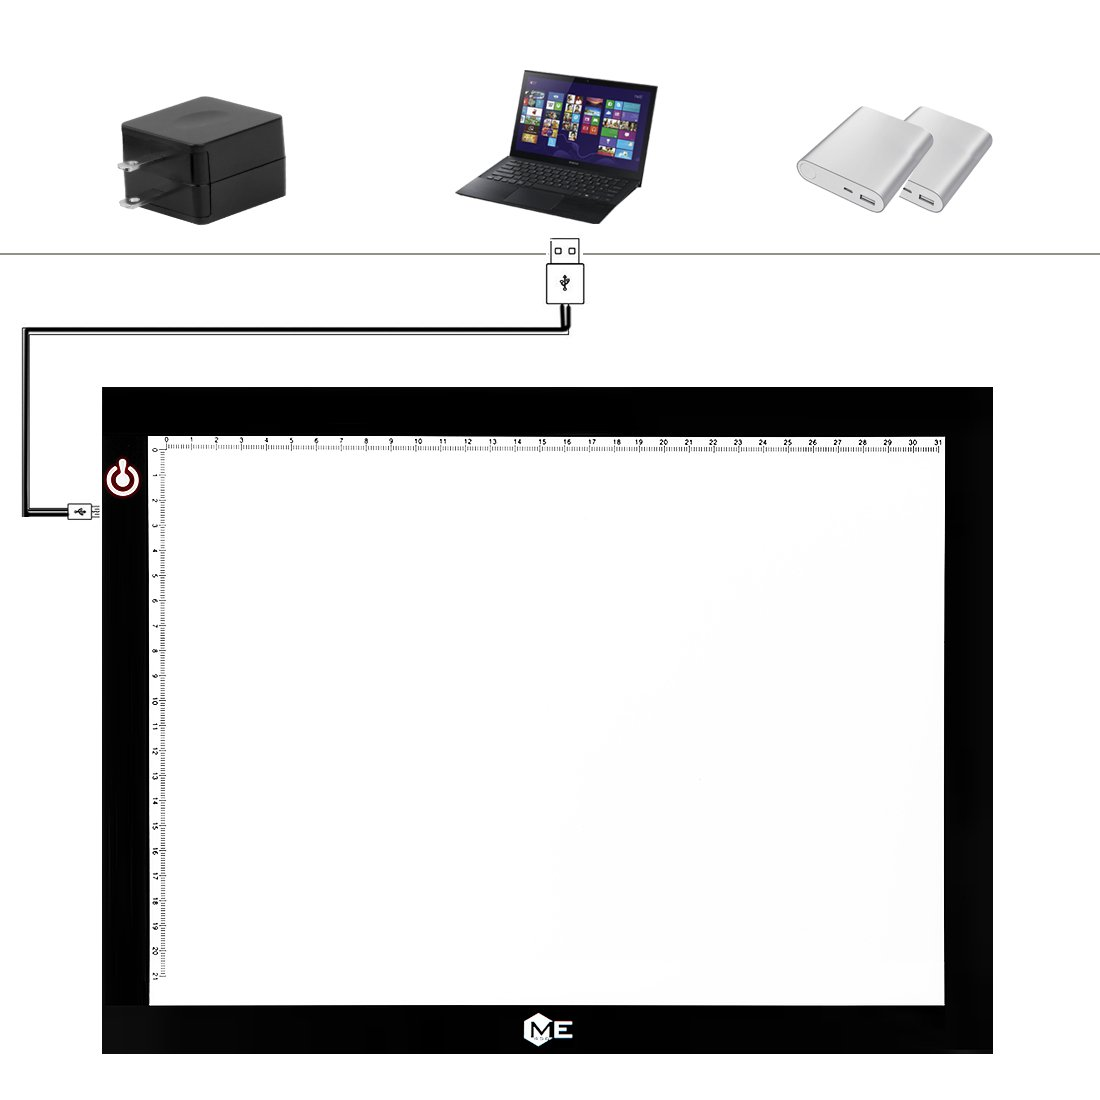 Dimmable A4 LED Tracer Light Box Slim Light Pad, ME456 USB Power Drawing Copy Board Tattoo Tracing LED Light Table for Artists Designing, Animation, Sketching, Stenciling (Black) by ME456 (Image #9)